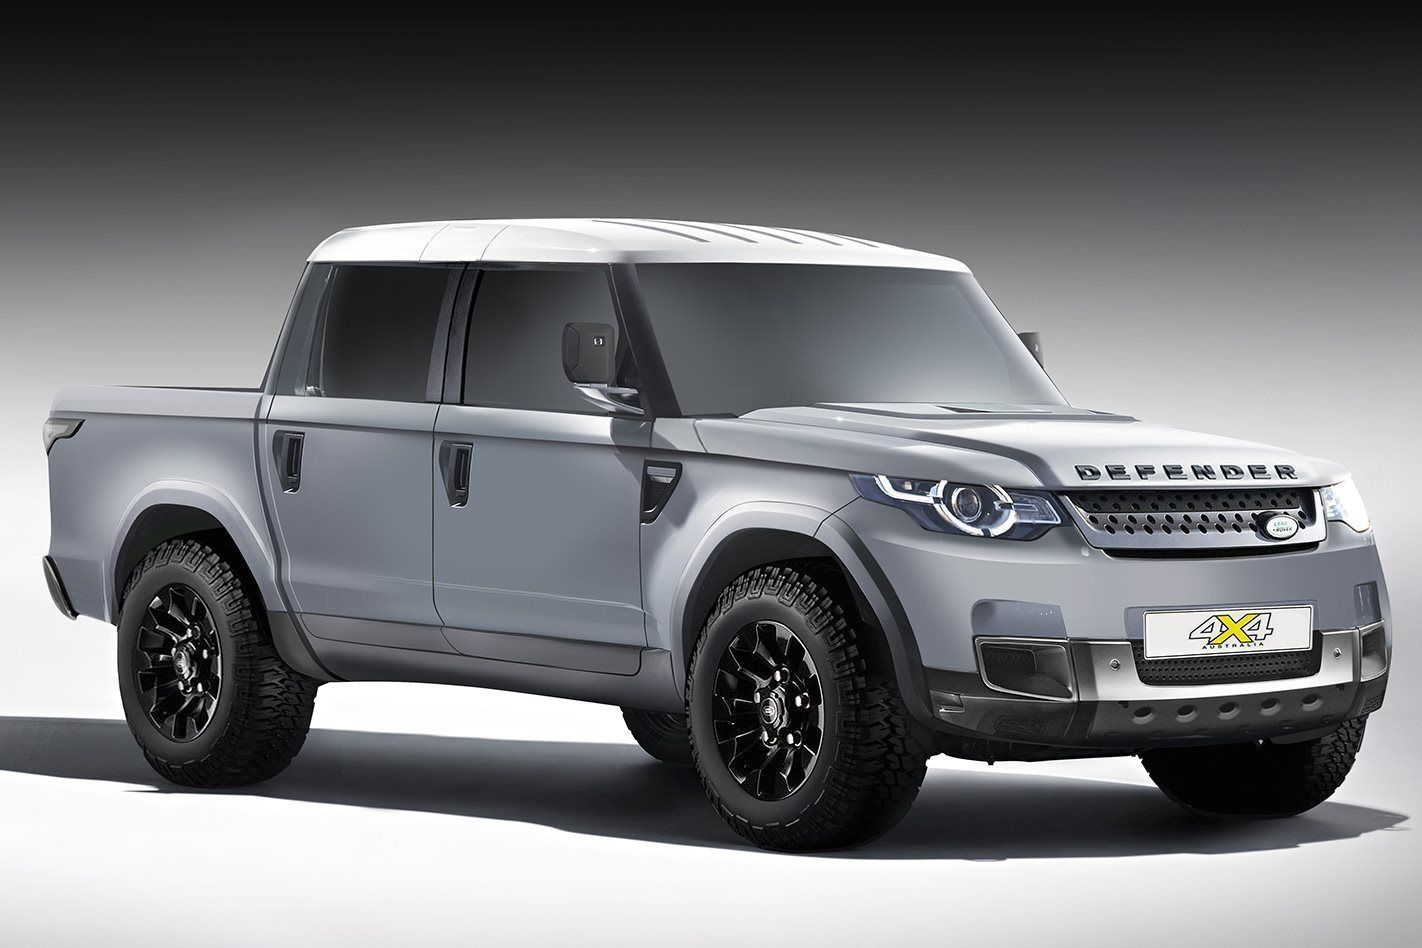 2020 Land Rover Defender: News, Design, Release, Price >> Best 2020 Land Rover Defender Redesign Car Price 2019